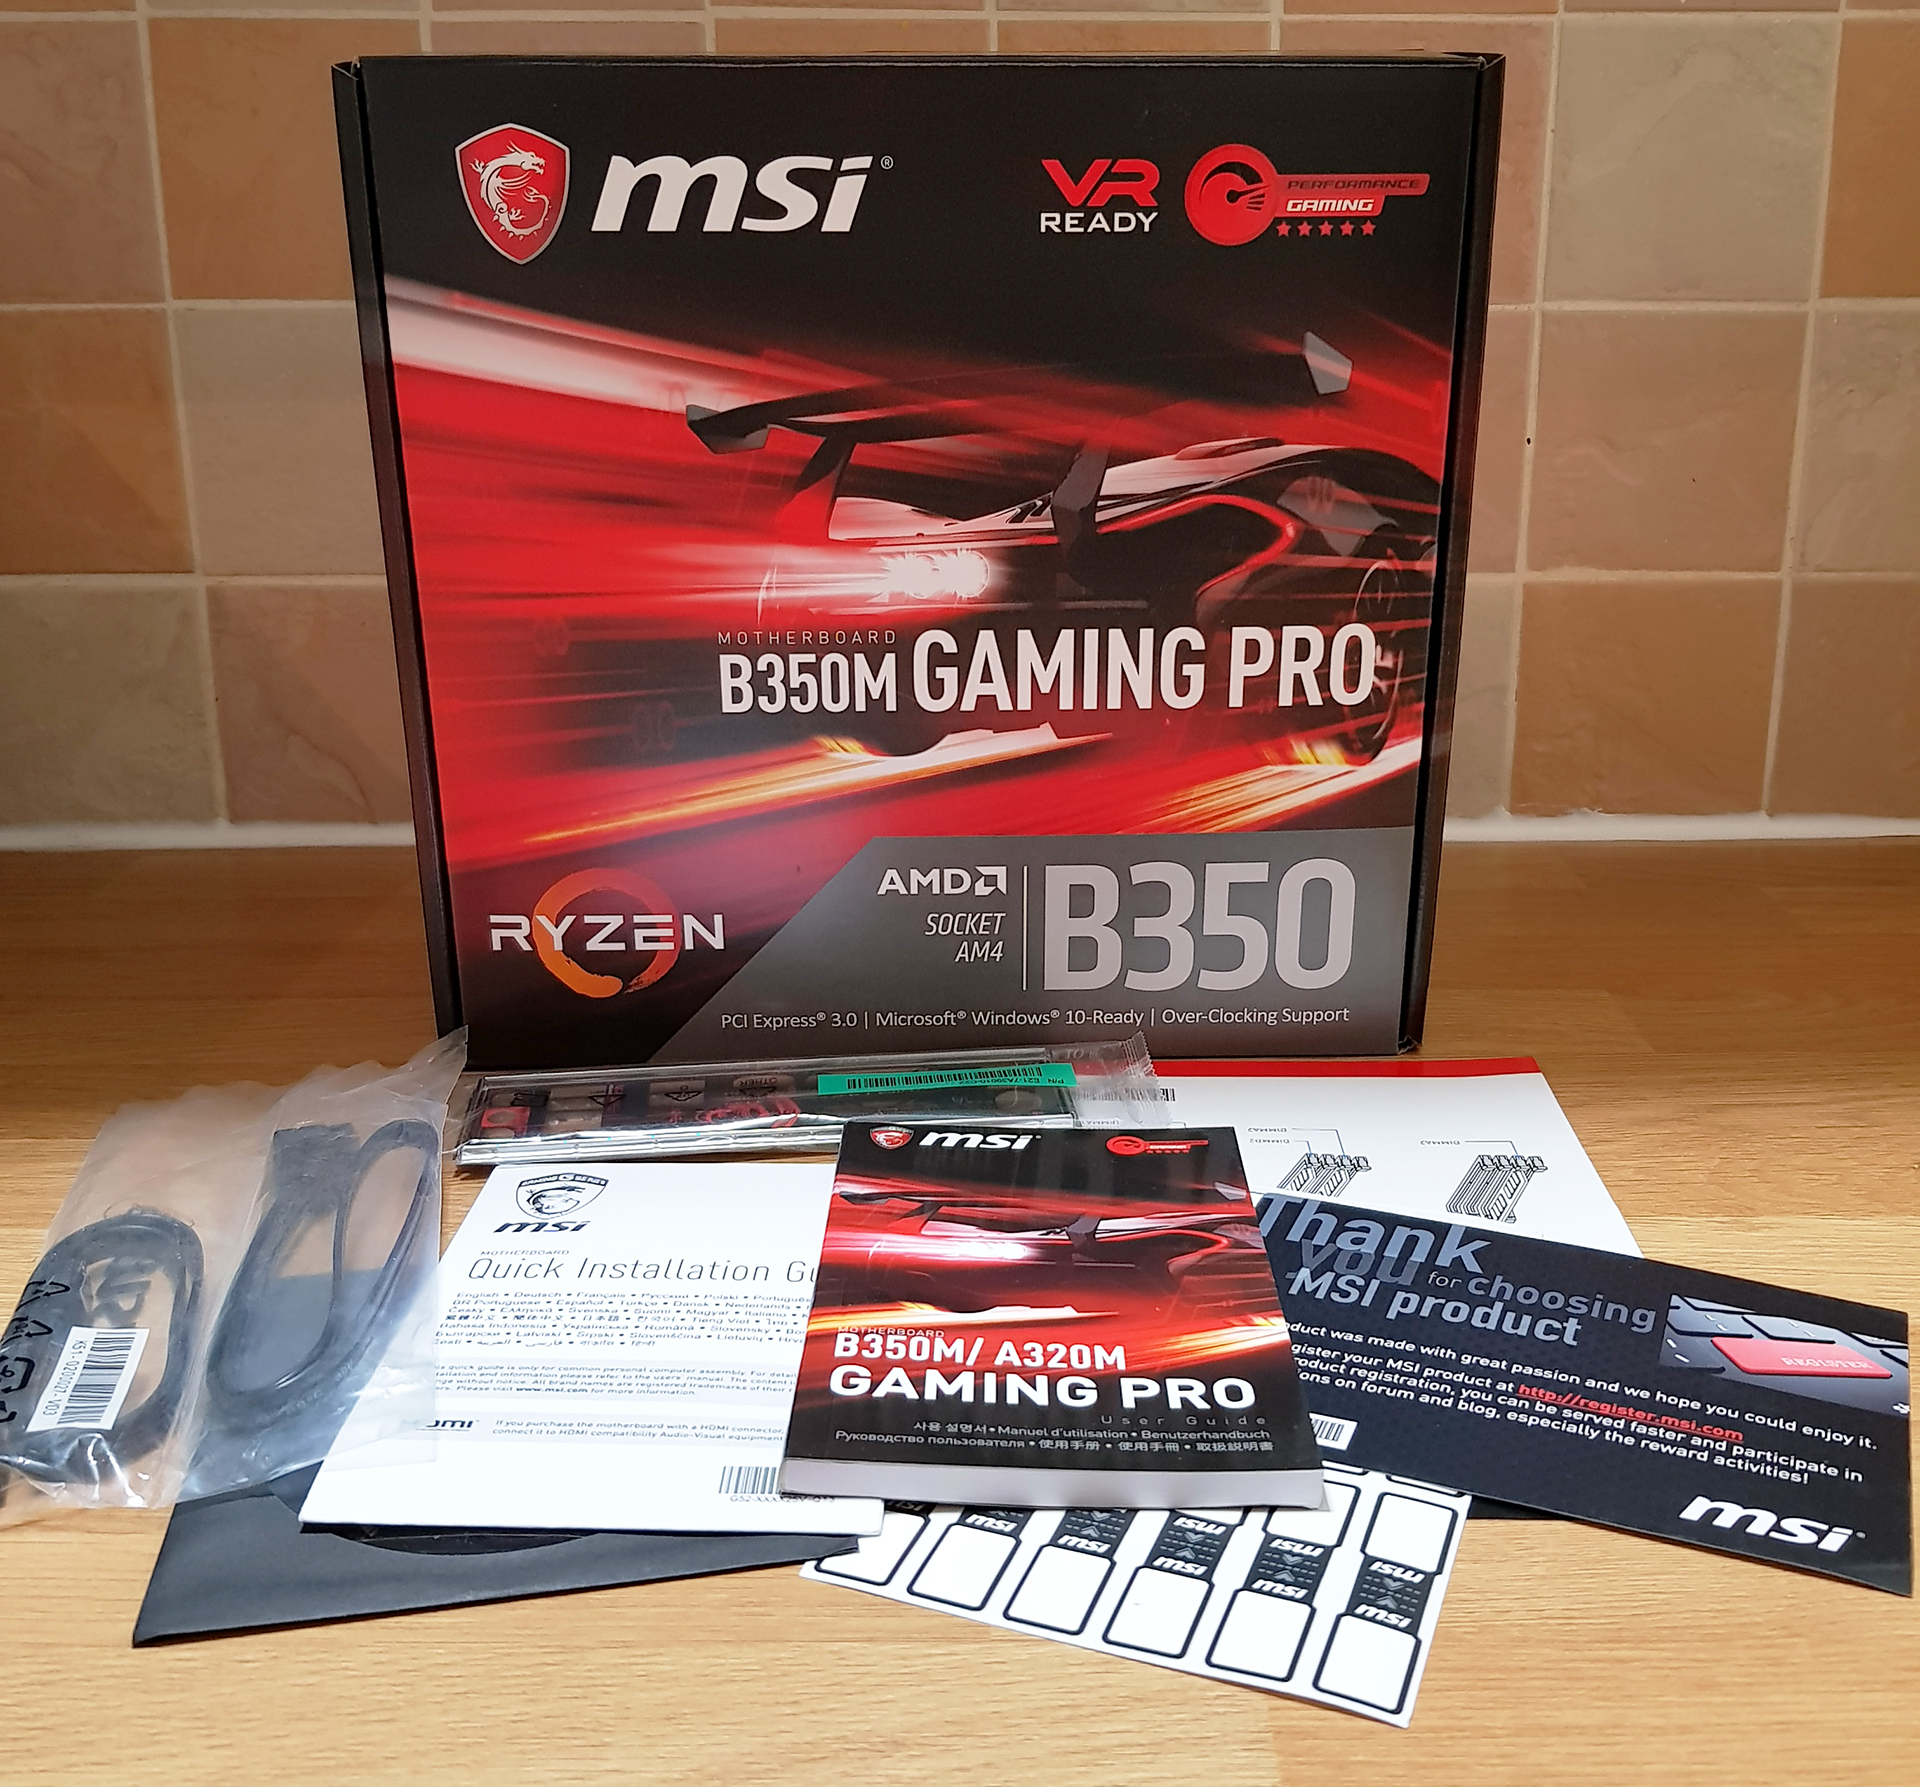 Board Features And Visual Inspection - The MSI B350M Gaming